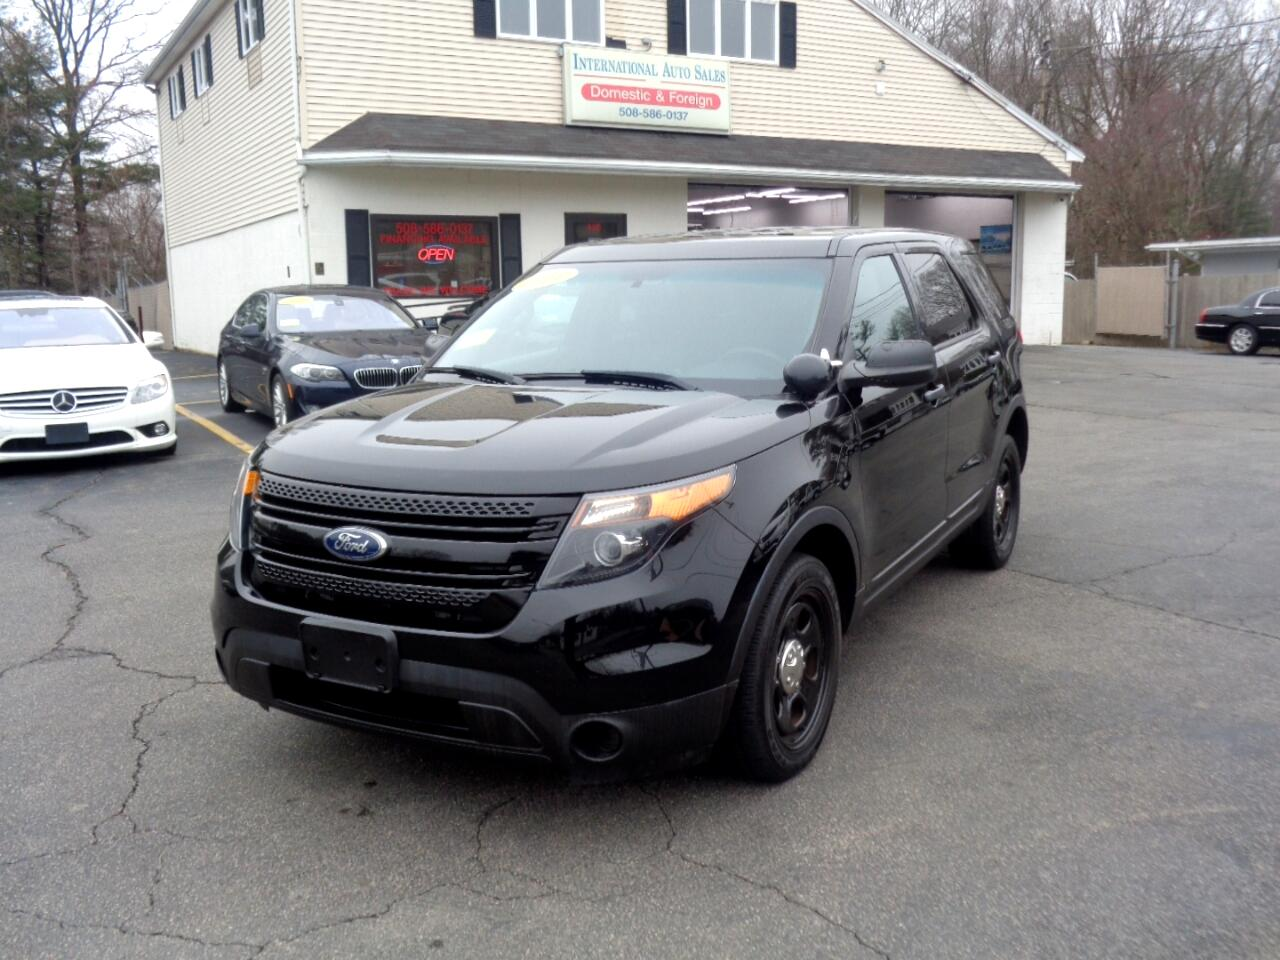 2013 Ford Explorer Police AWD